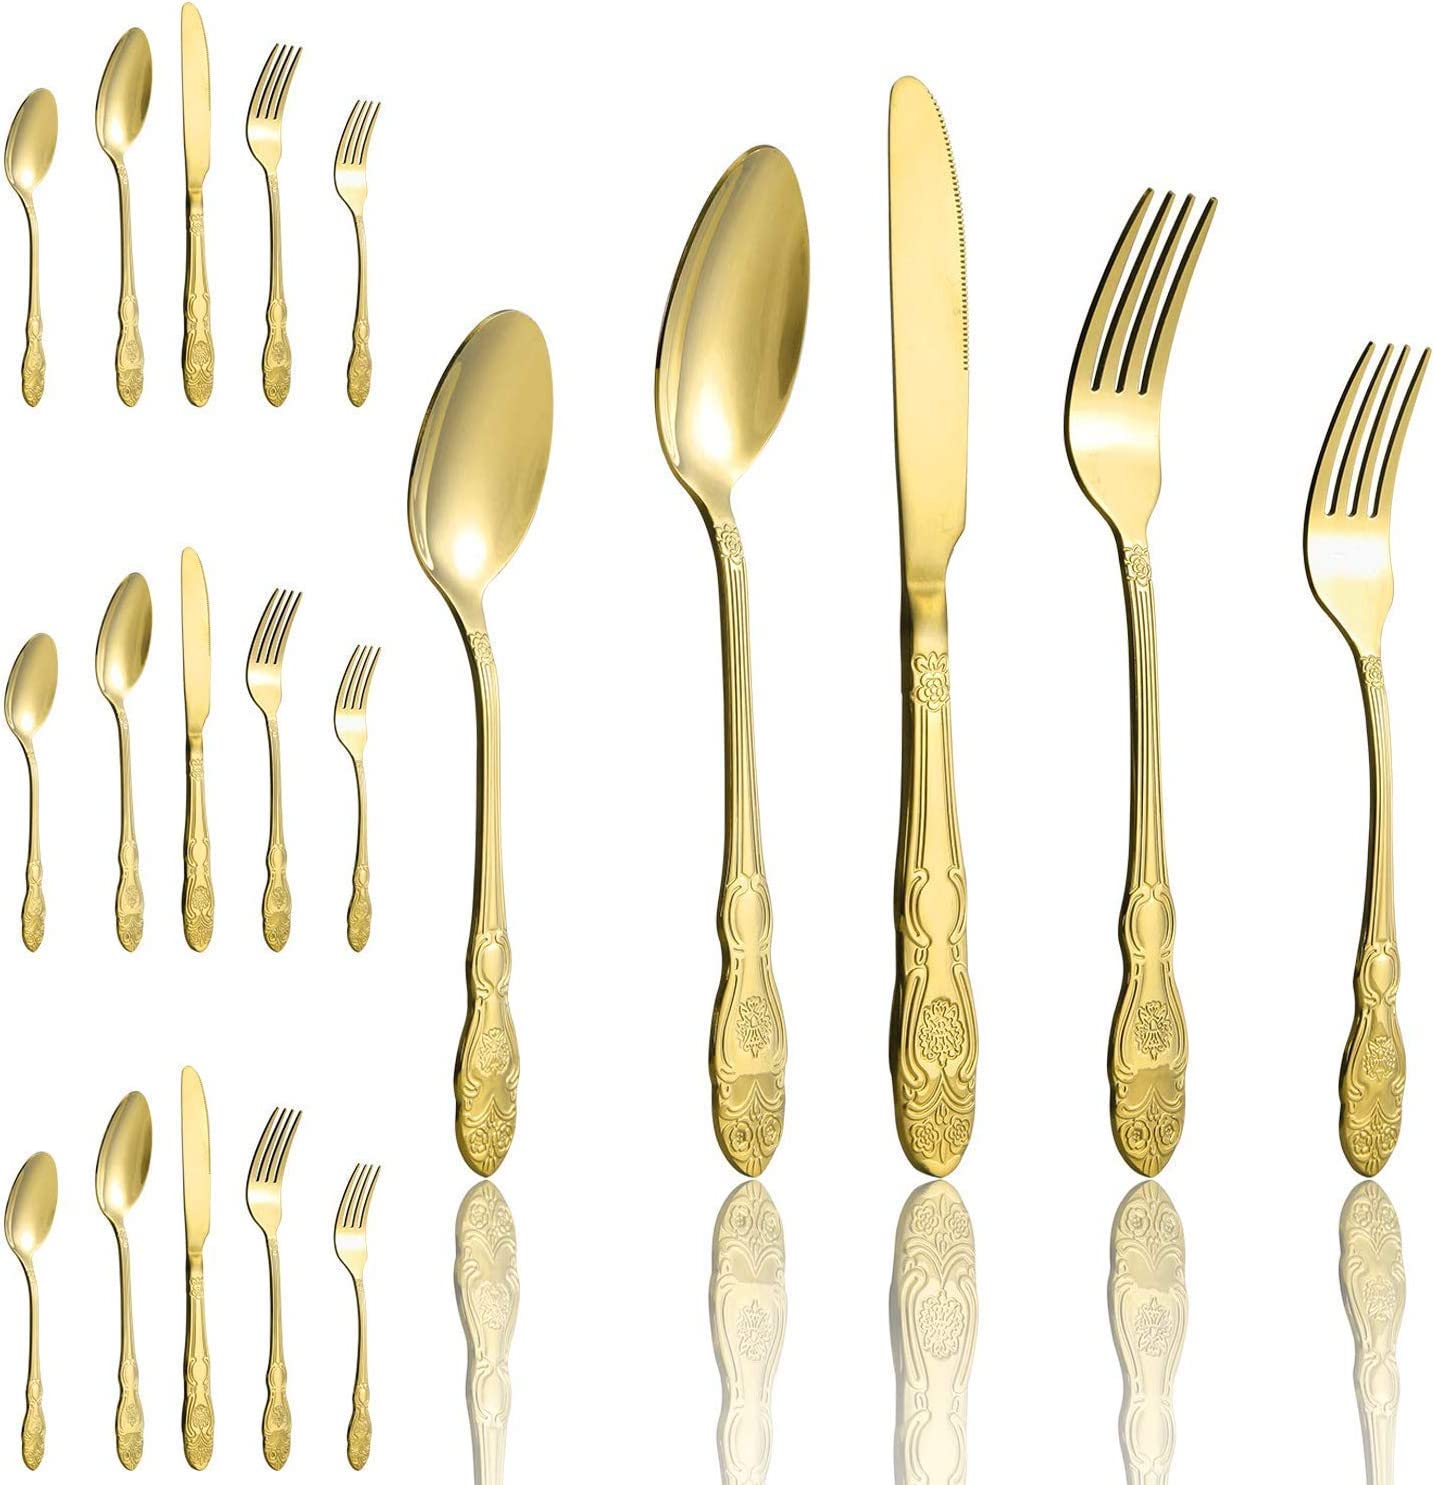 Amazon Com 20 Piece Gold Flatware Silverware Stainless Steel Cutlery Set Service For 4 Ideal For Home Wedding Christmas Thanksgiving Festival Party Gift Flatware Sets